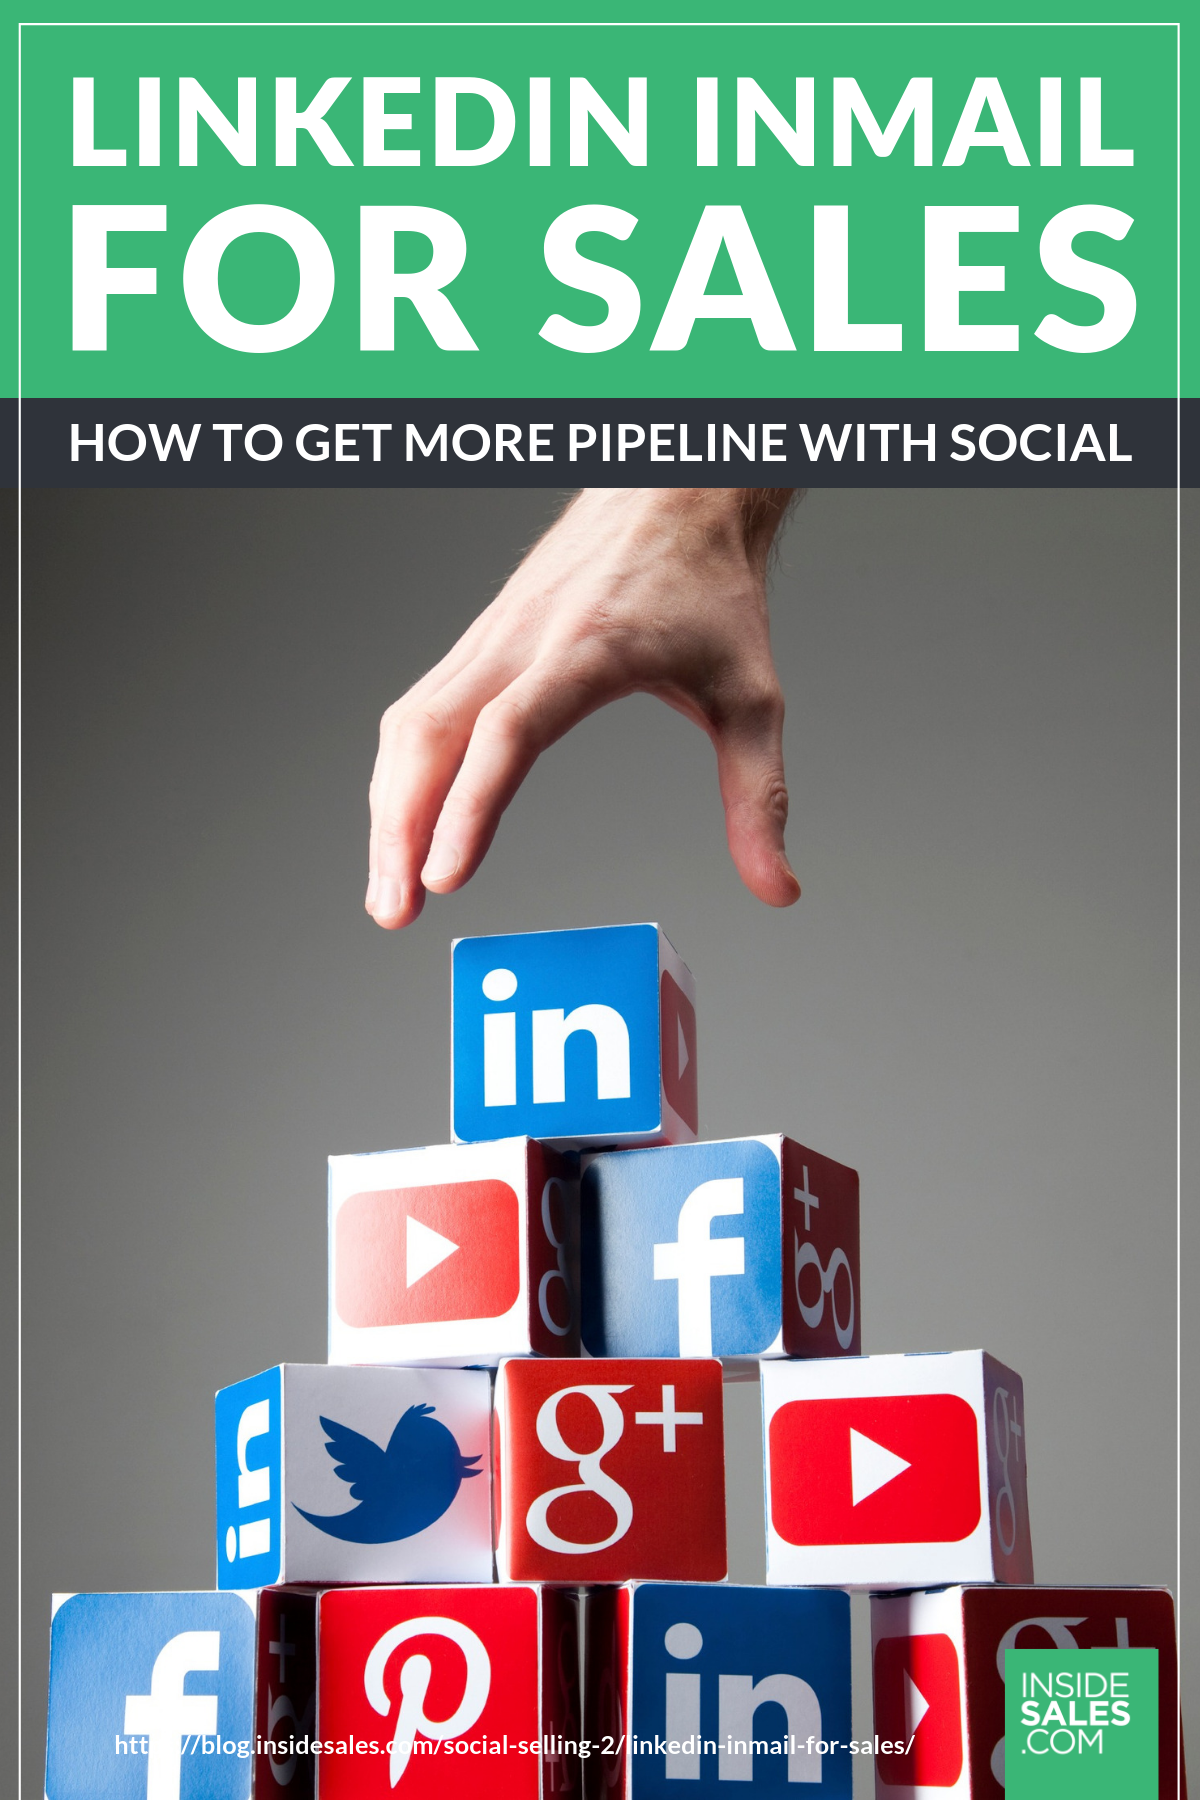 Building Pipeline With LinkedIn InMail How to Get Social